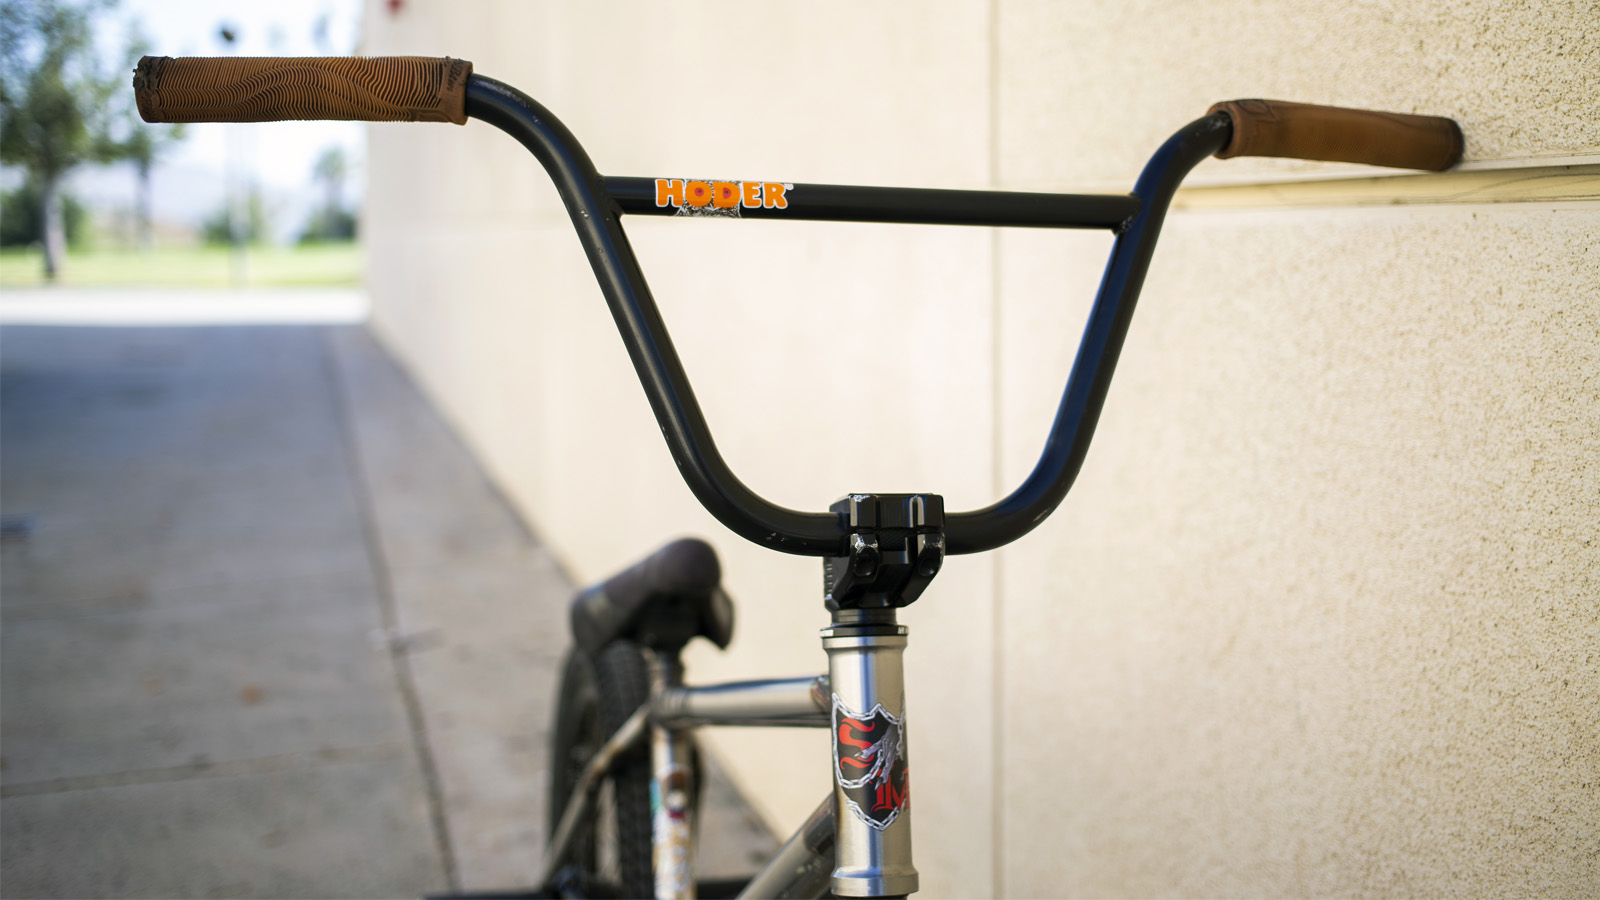 Hoder High bars and Hoder Grips